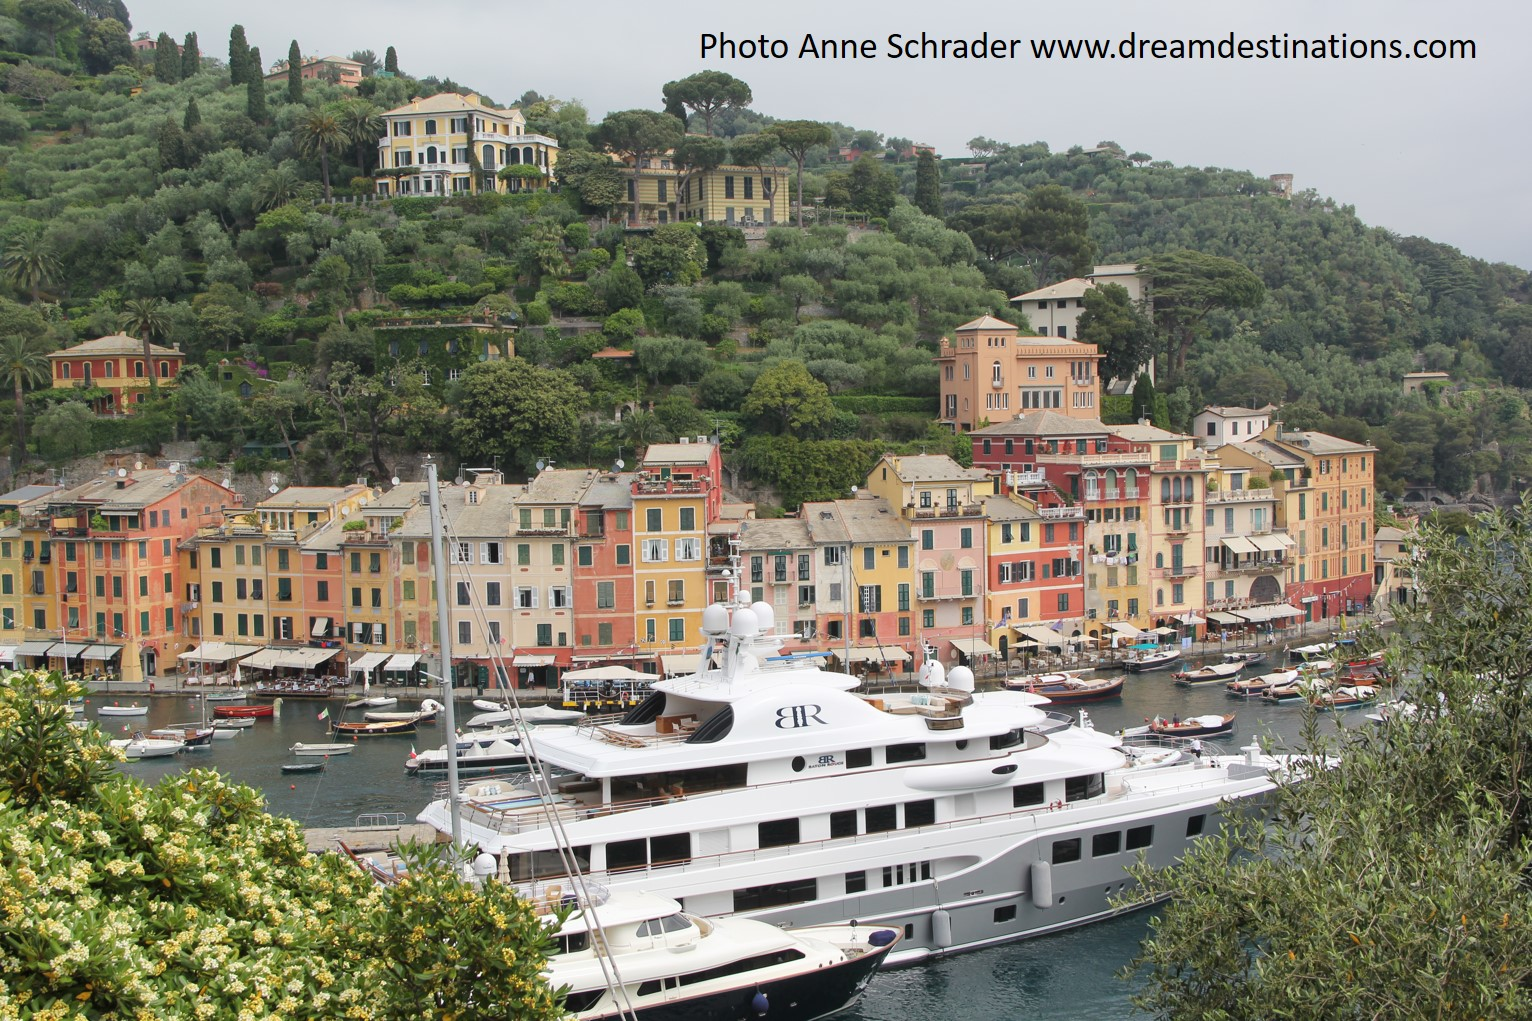 The harbor of Portofino